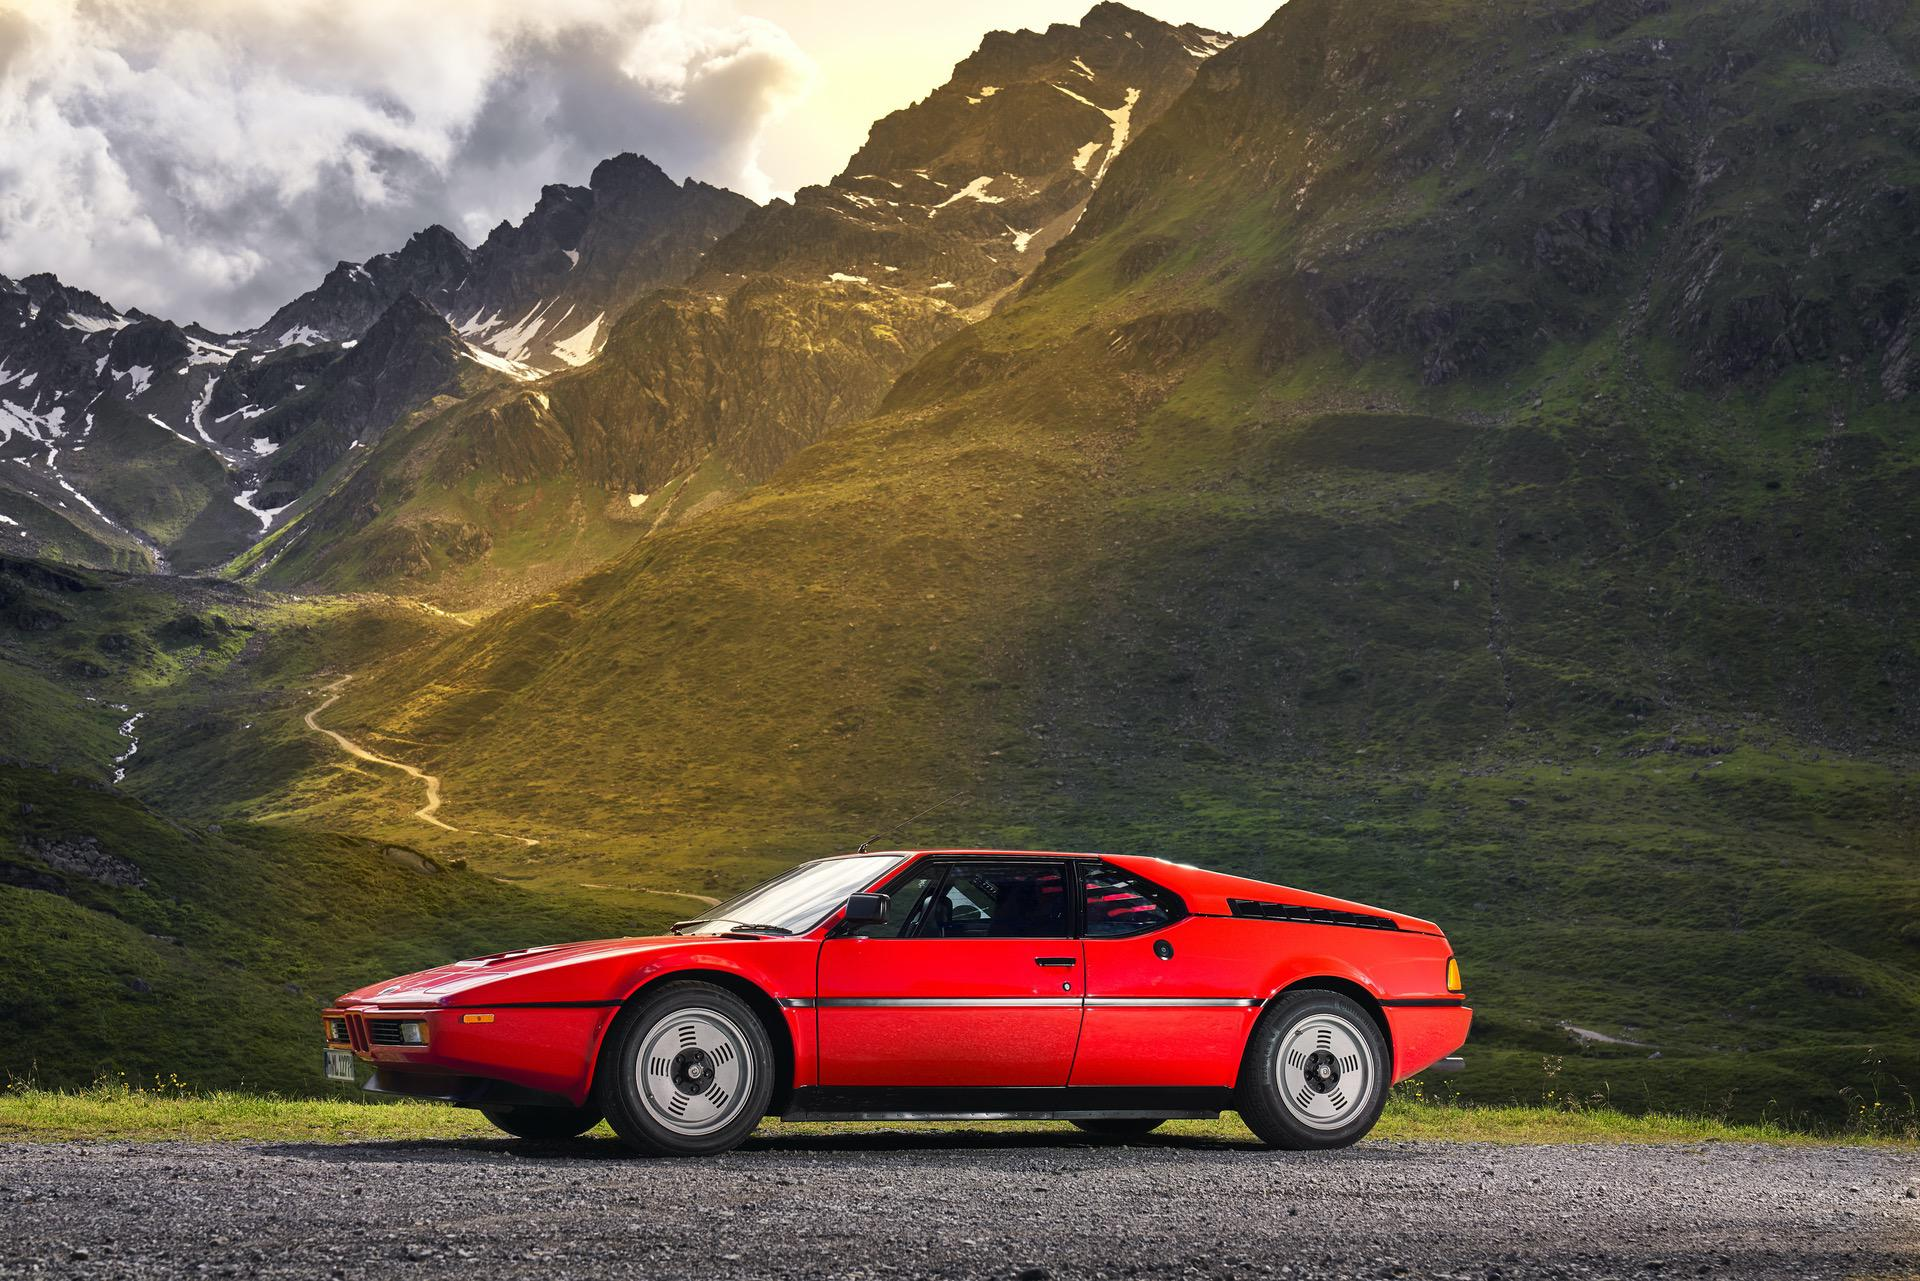 BMW M1 red supercar 18